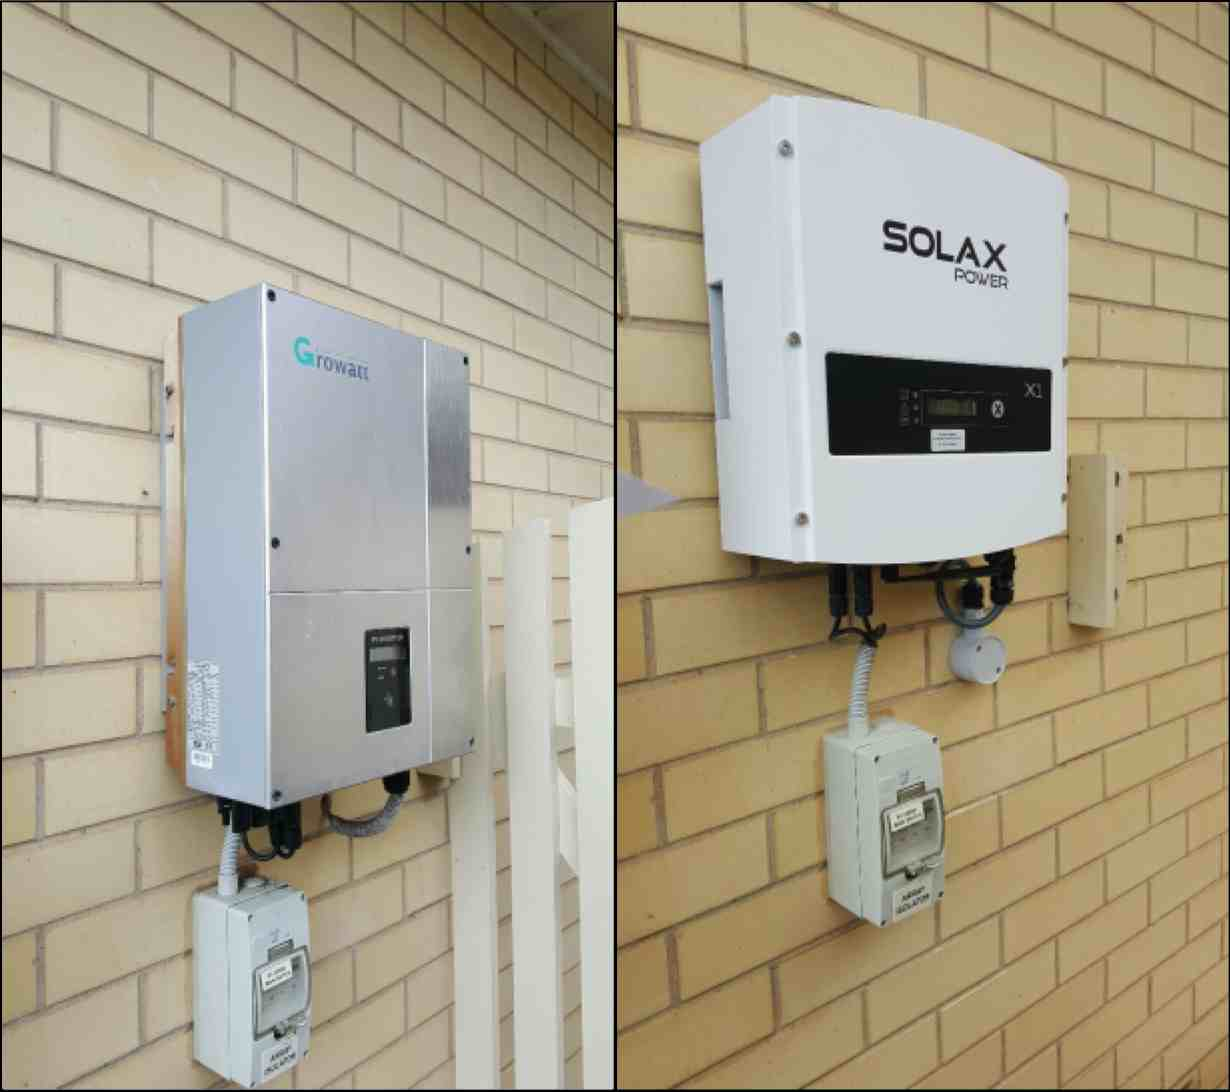 SolaX Replaces Growatt With